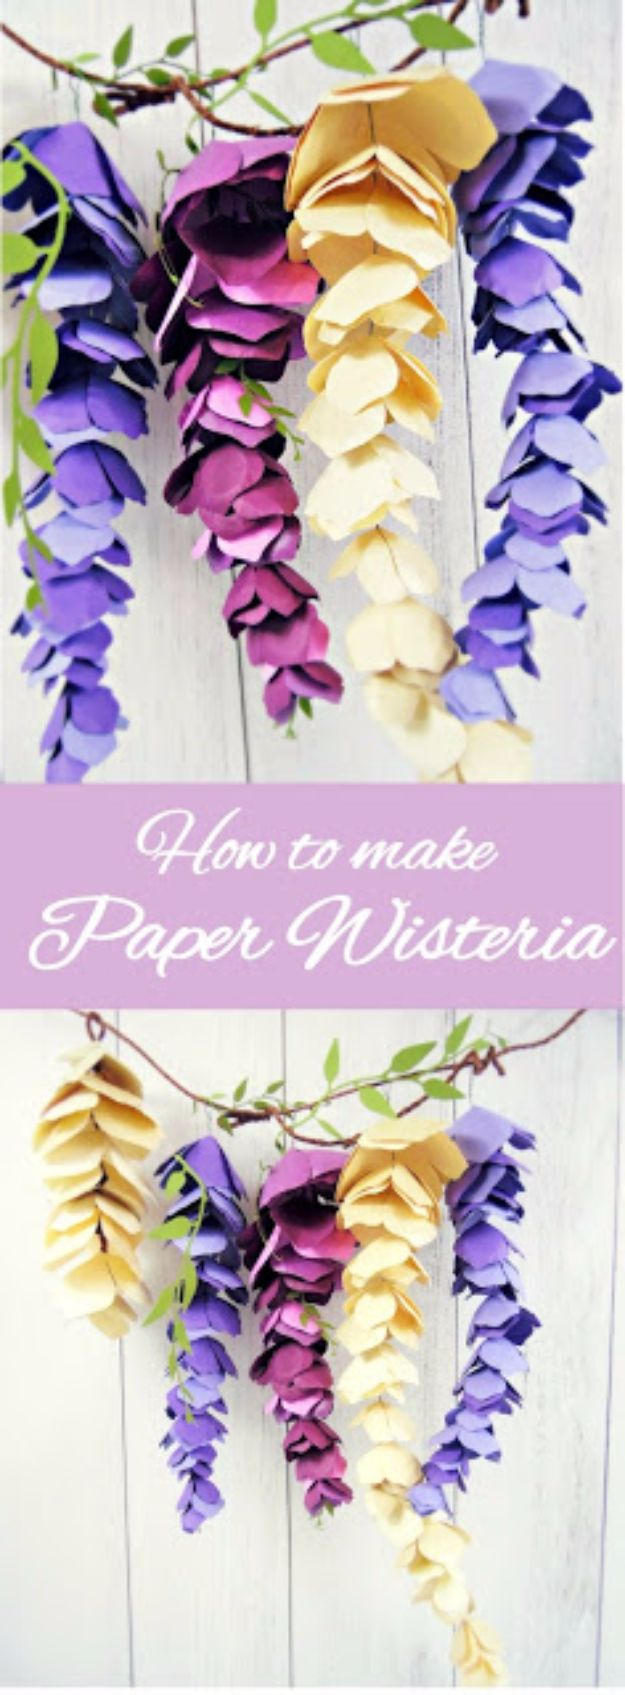 DIY Paper Flowers For Your Room - Hanging Paper Wisteria - How To Make A Paper Flower - Large Wedding Backdrop for Wall Decor - Easy Tissue Paper Flower Tutorial for Kids - Giant Projects for Photo Backdrops - Daisy, Roses, Bouquets, Centerpieces - Cricut Template and Step by Step Tutorial http://diyjoy.com/diy-paper-flowers